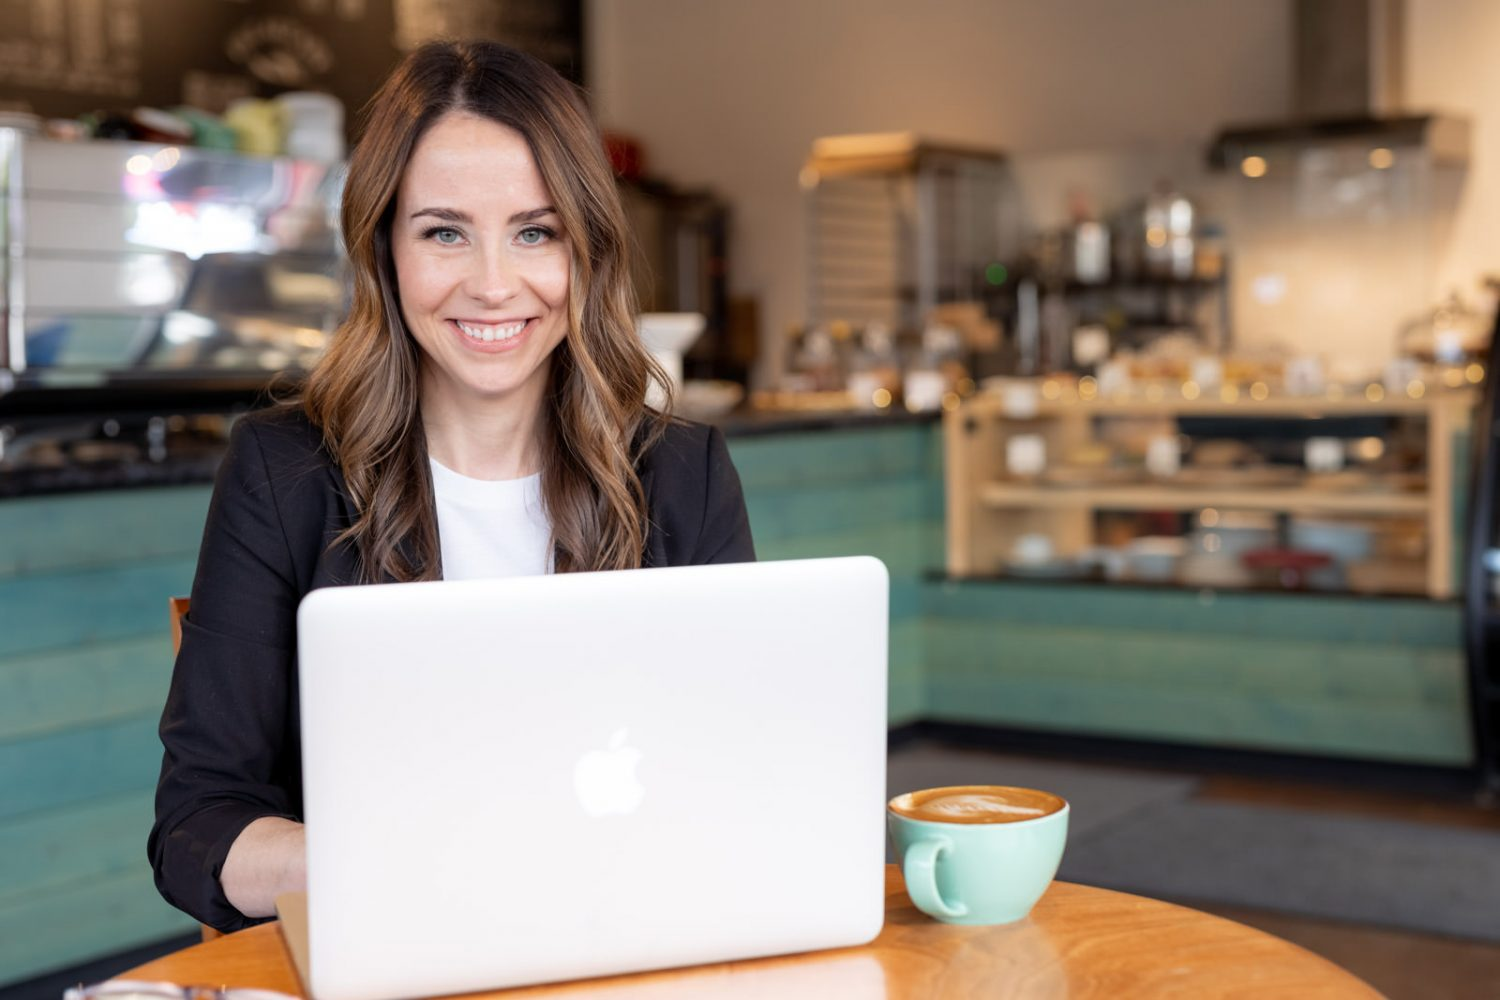 woman working on laptop in coffee shop smiling at camera personal branding photo